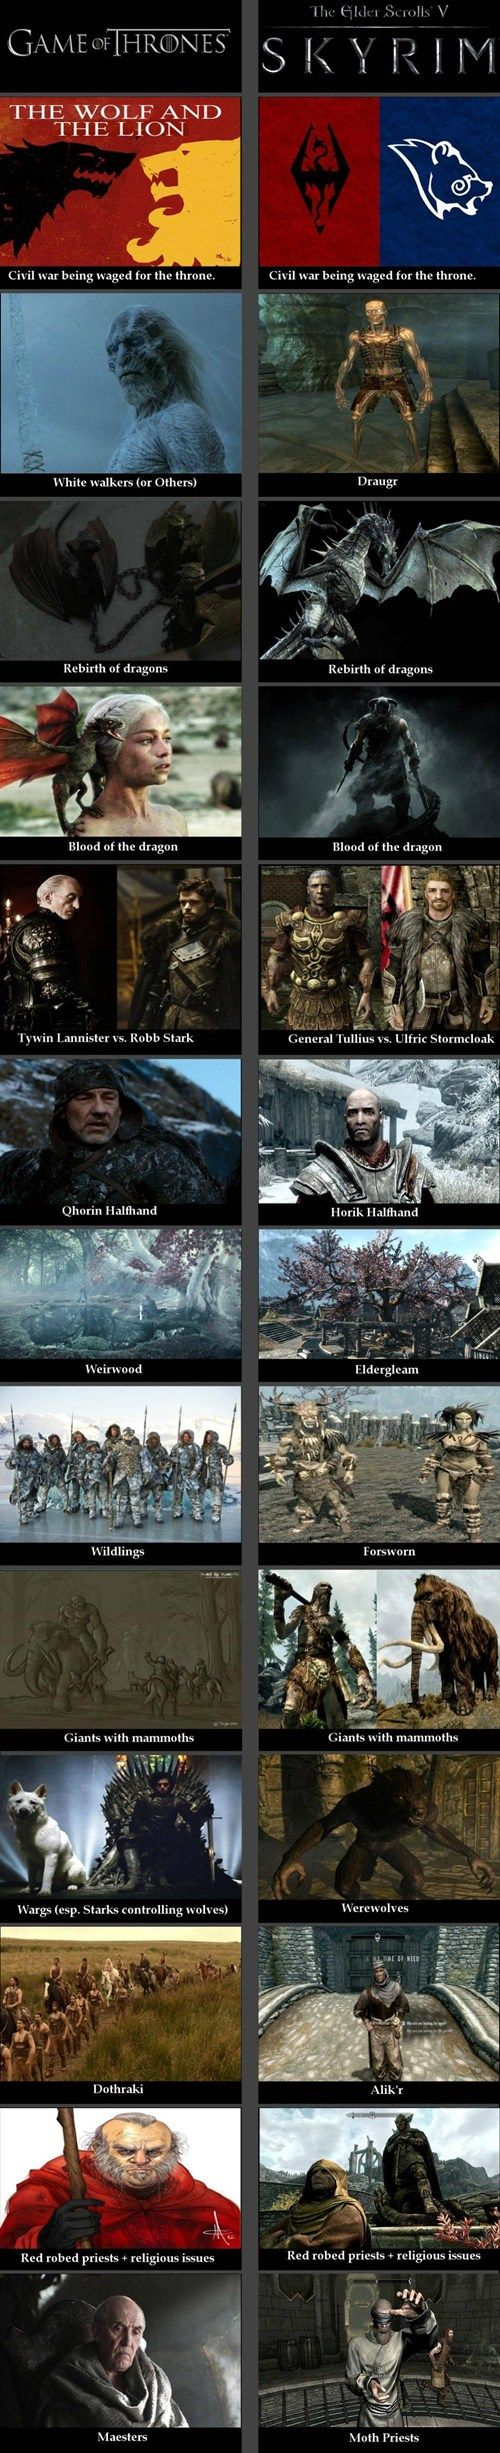 They're so similar! No wonder I always felt a need to play Skyrim after watching an episode haha! @jcyarbrough